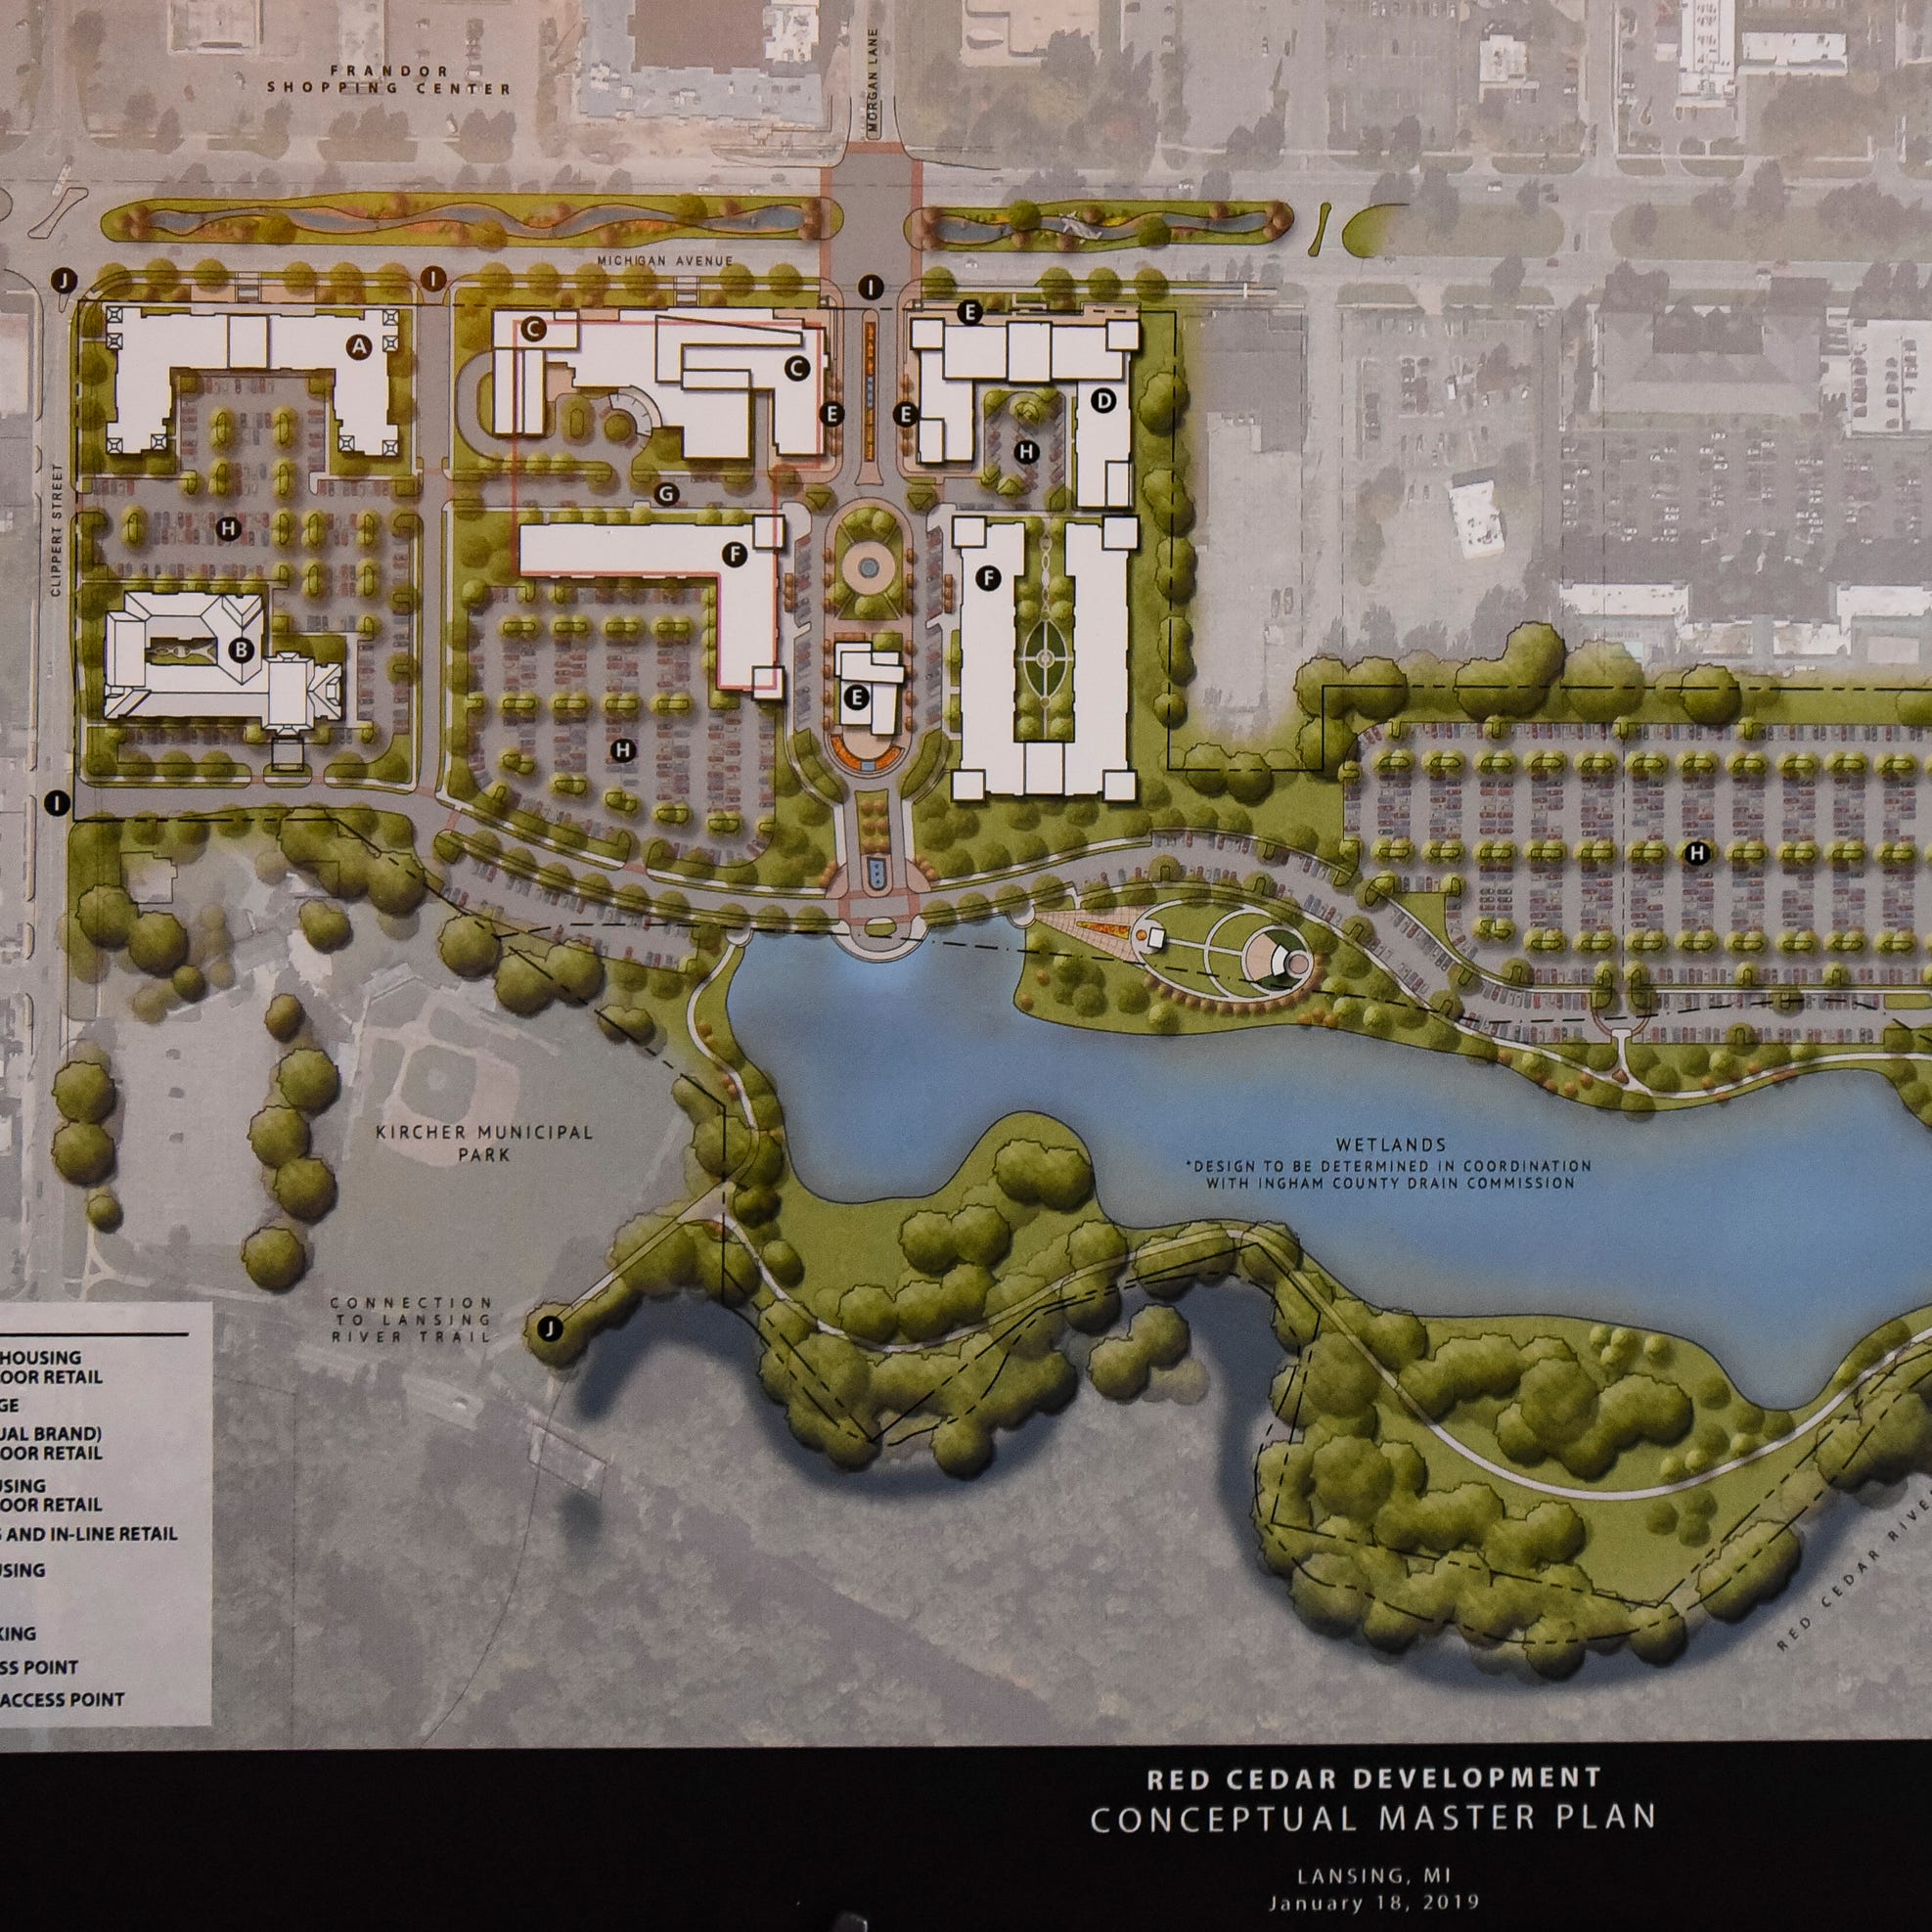 City Council approves plan for Red Cedar project. Construction to start in late summer